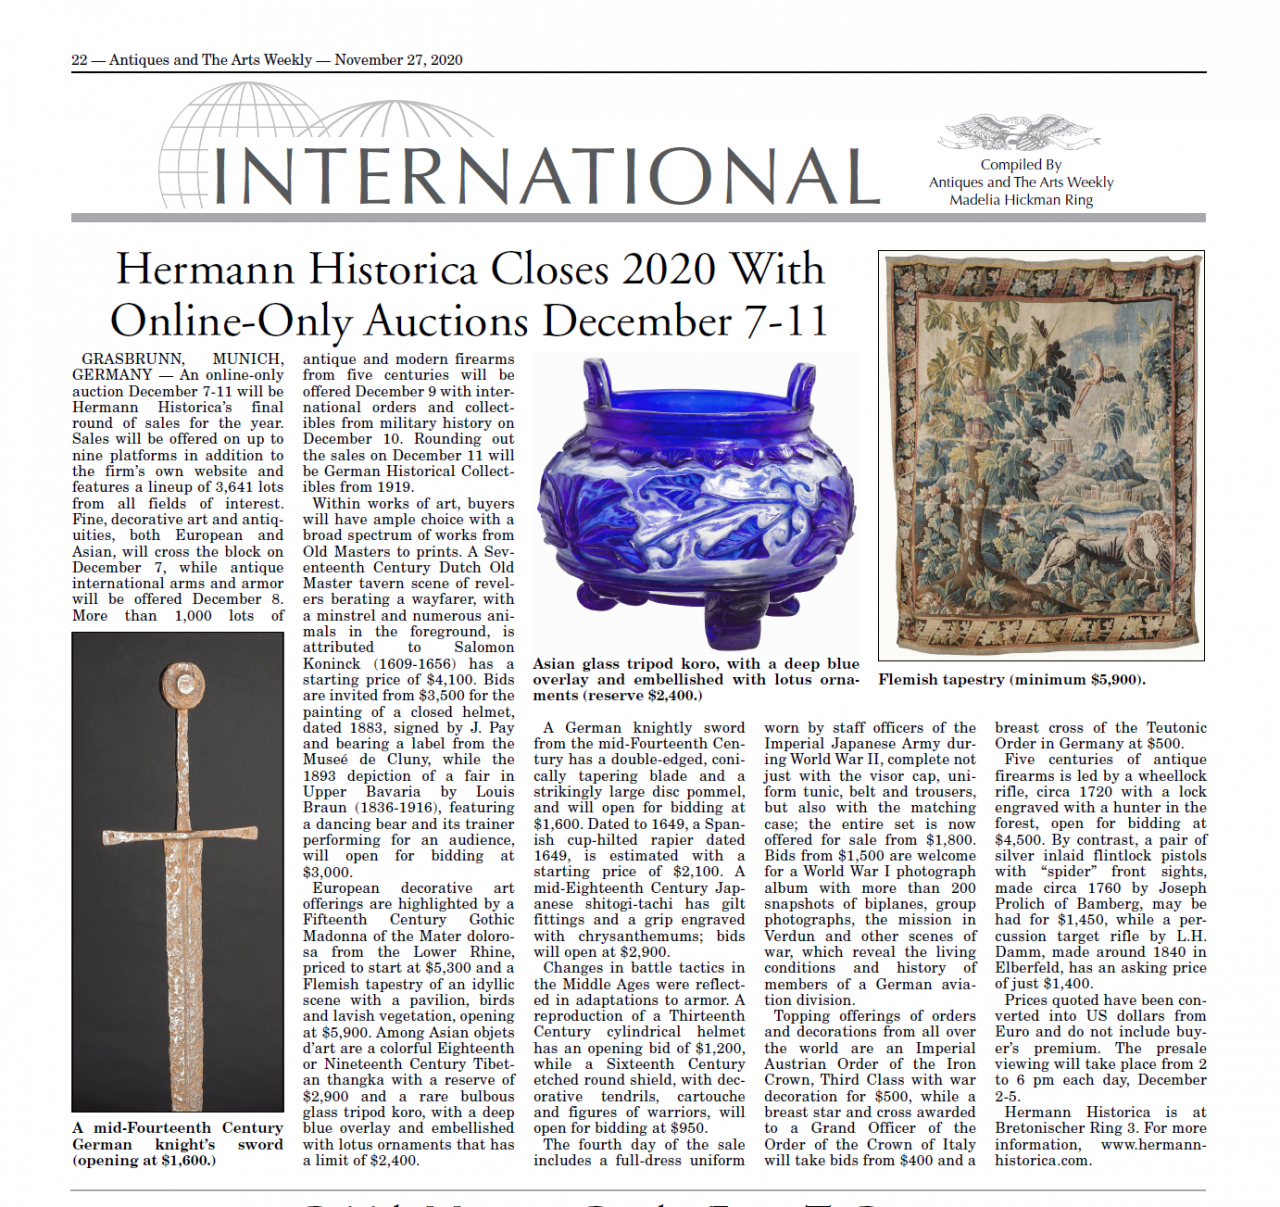 """""""Hermann Historica Closes 2020 With Online-Only Auctions December 7-11"""""""